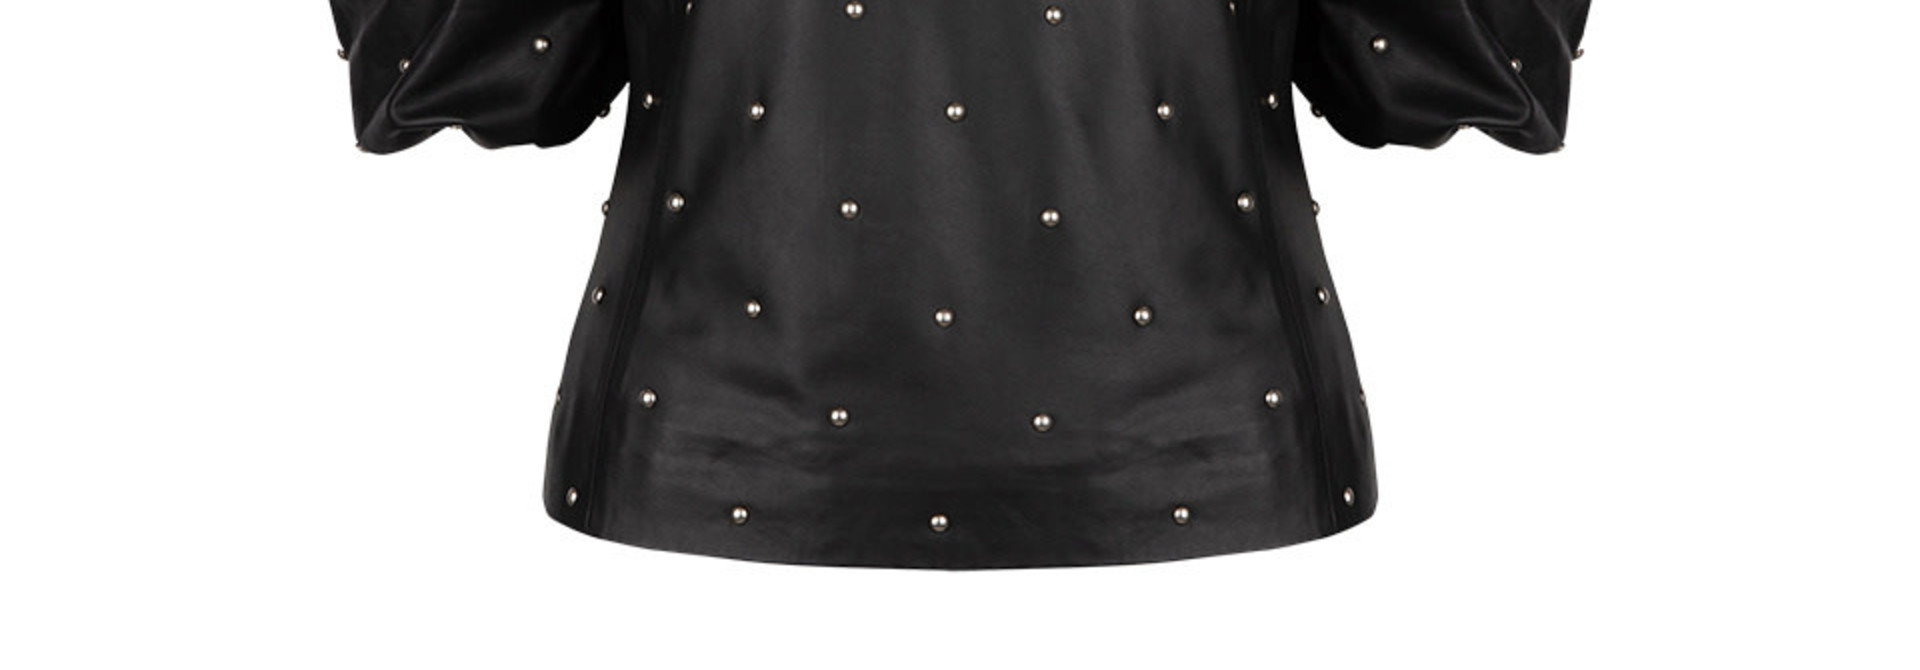 Eclate leather top